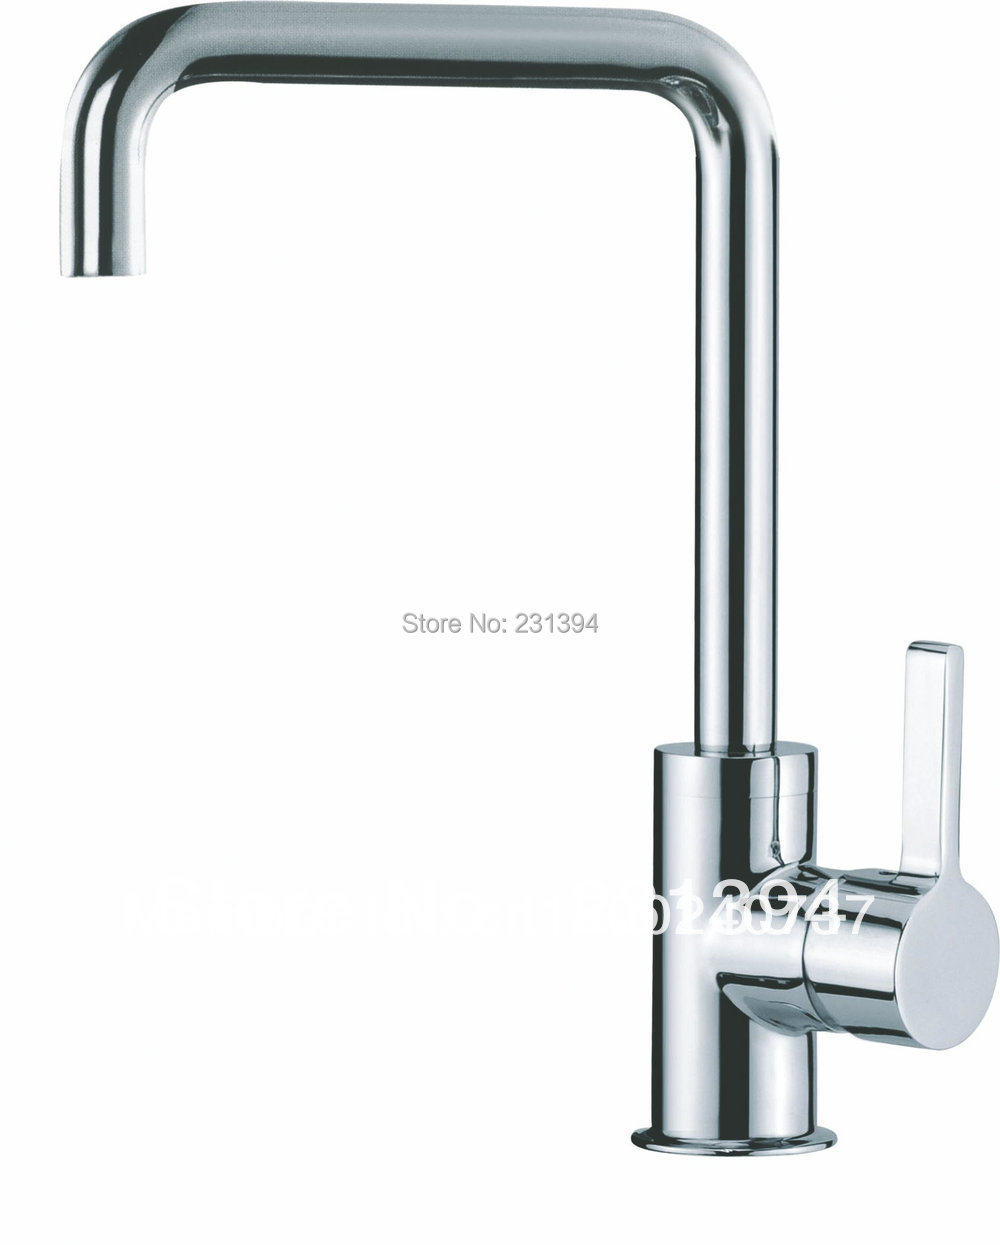 Pfister Kitchen Faucet Popular Pfister Faucets Buy Cheap Pfister Faucets Lots From China